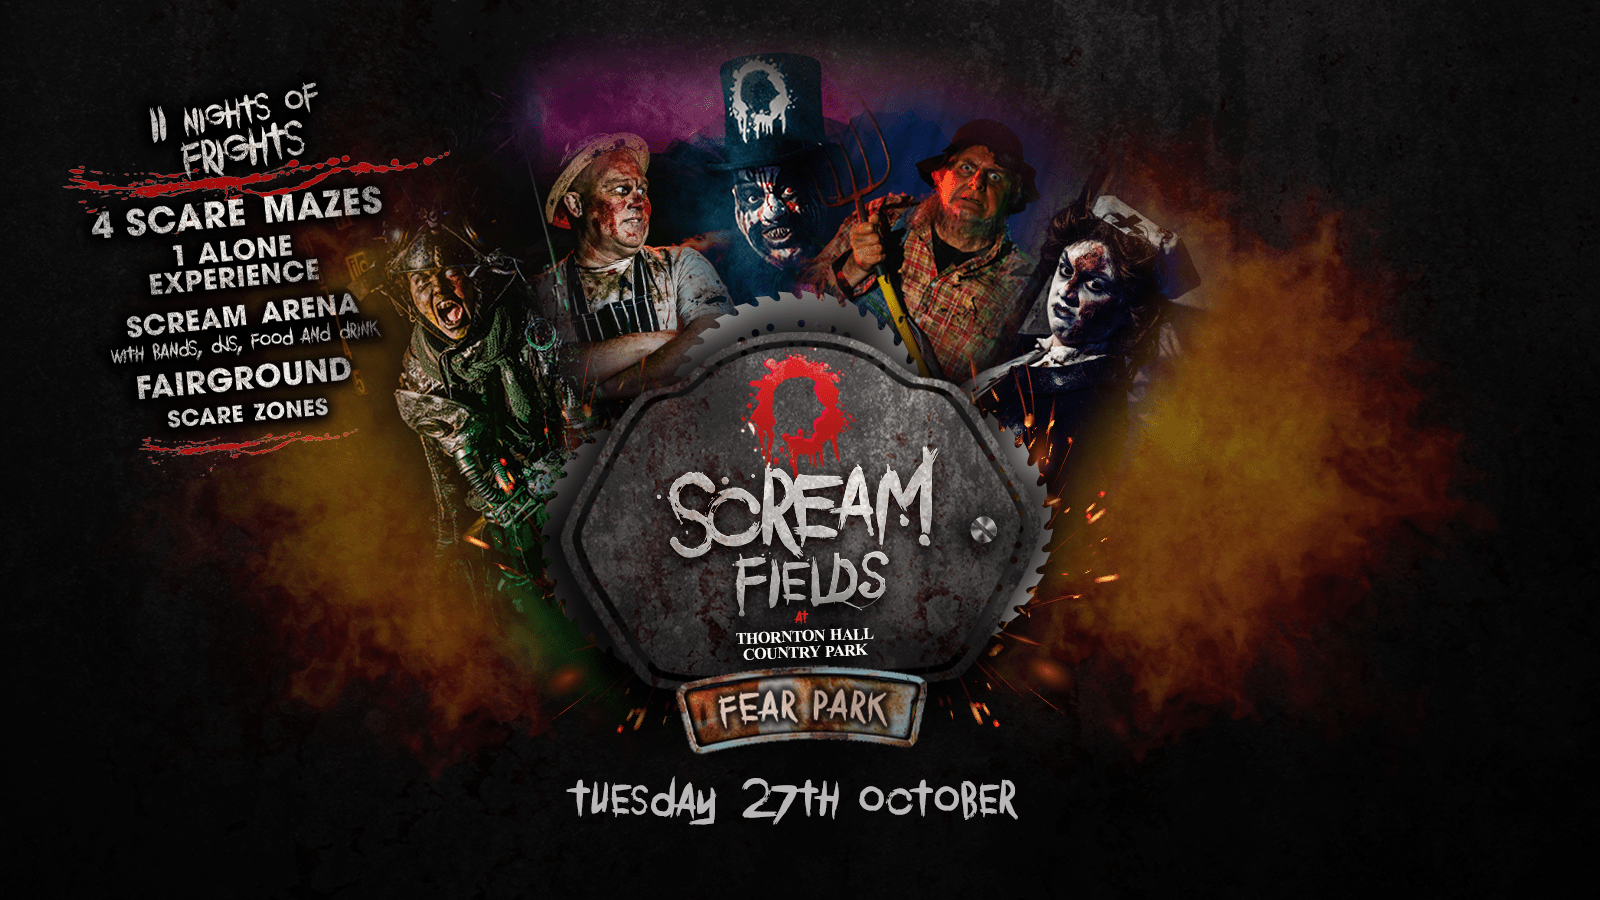 6.00PM – Screamfields: Tuesday 27th October 2020